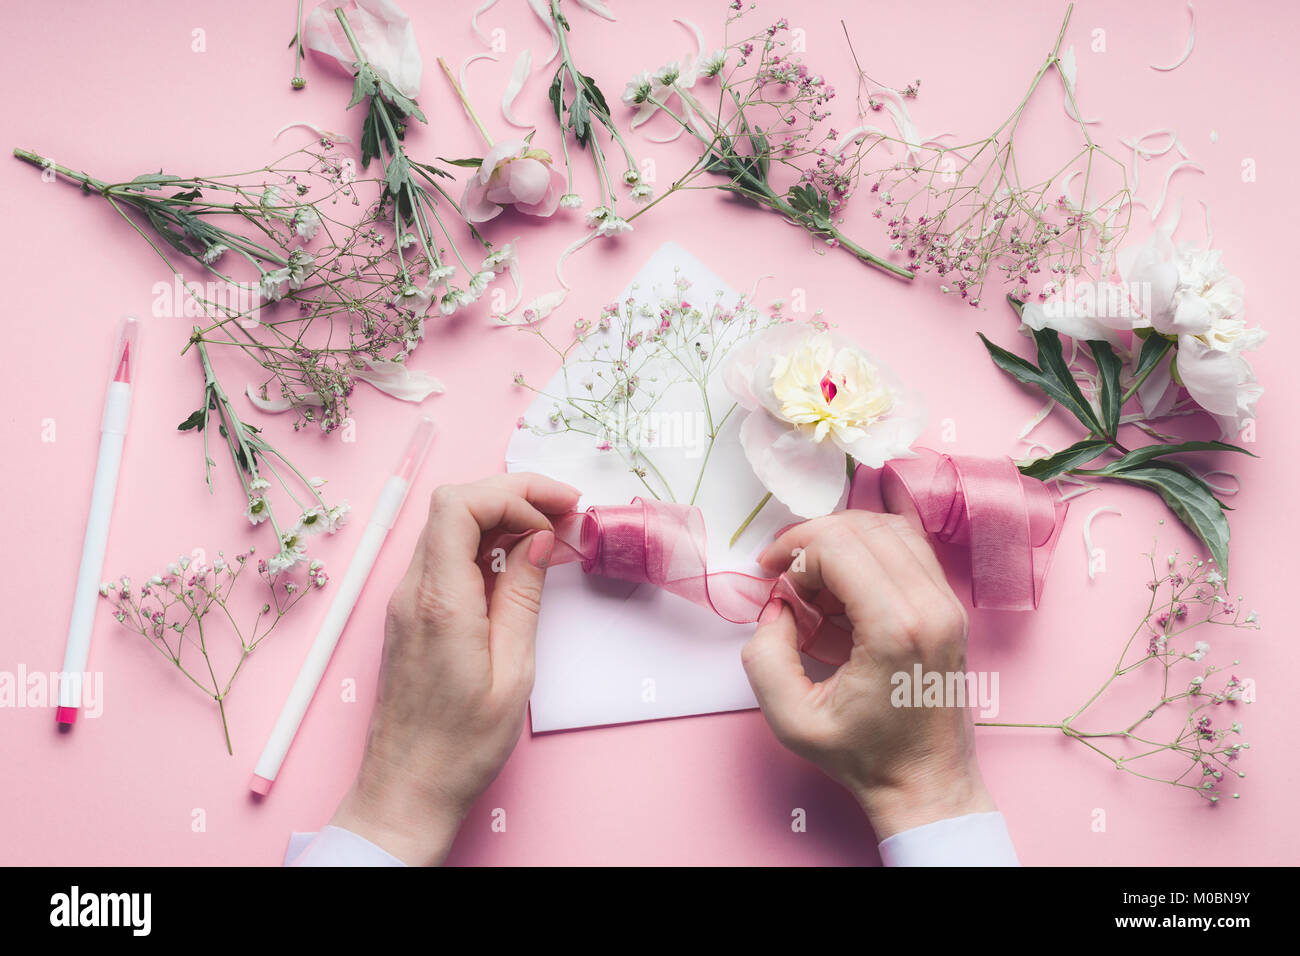 Female Hand Making Greeting Card With Envelope With Flowers